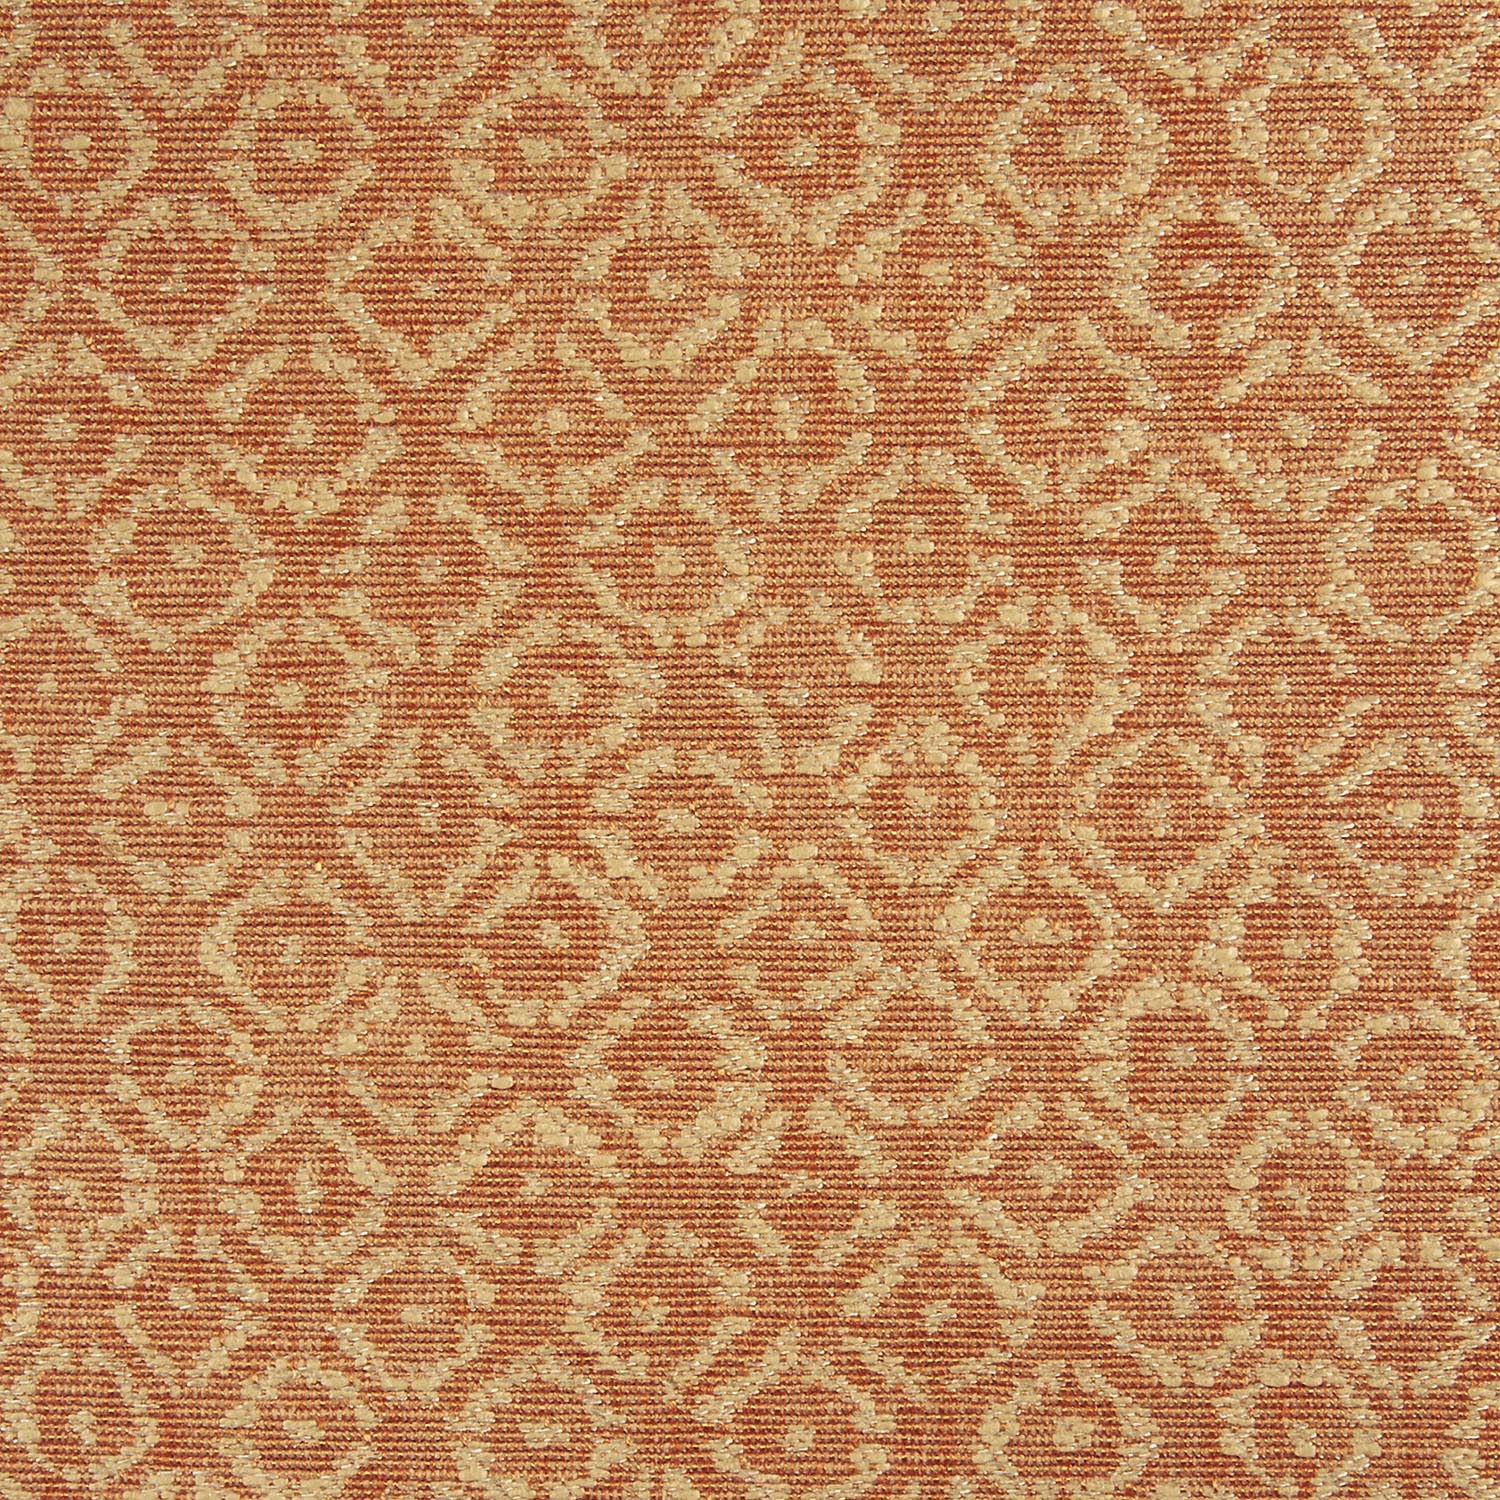 <p><strong>ALBEMARELE</strong>tangerine 1600-01<a href=/the-langham-collection/albemarle-tangerine-1600-01>More →</a></p>